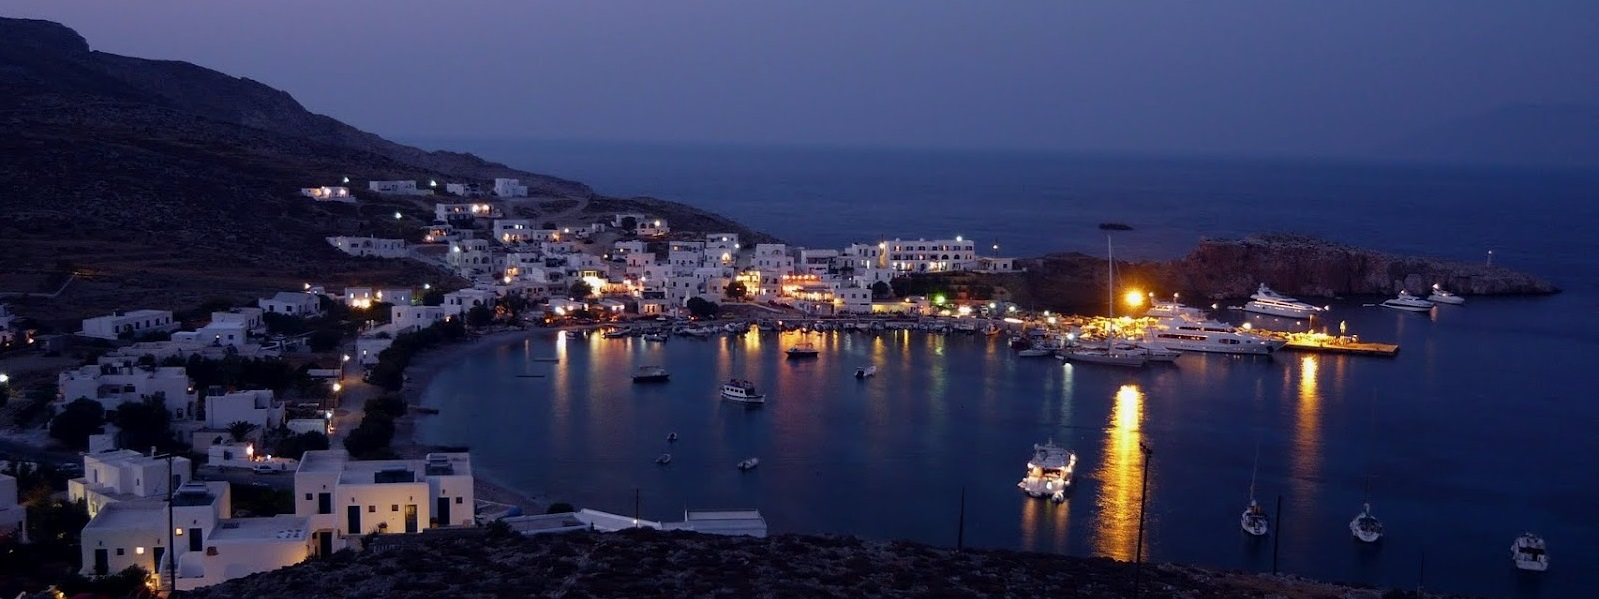 The port of Folegandros - Sail in Greek Waters